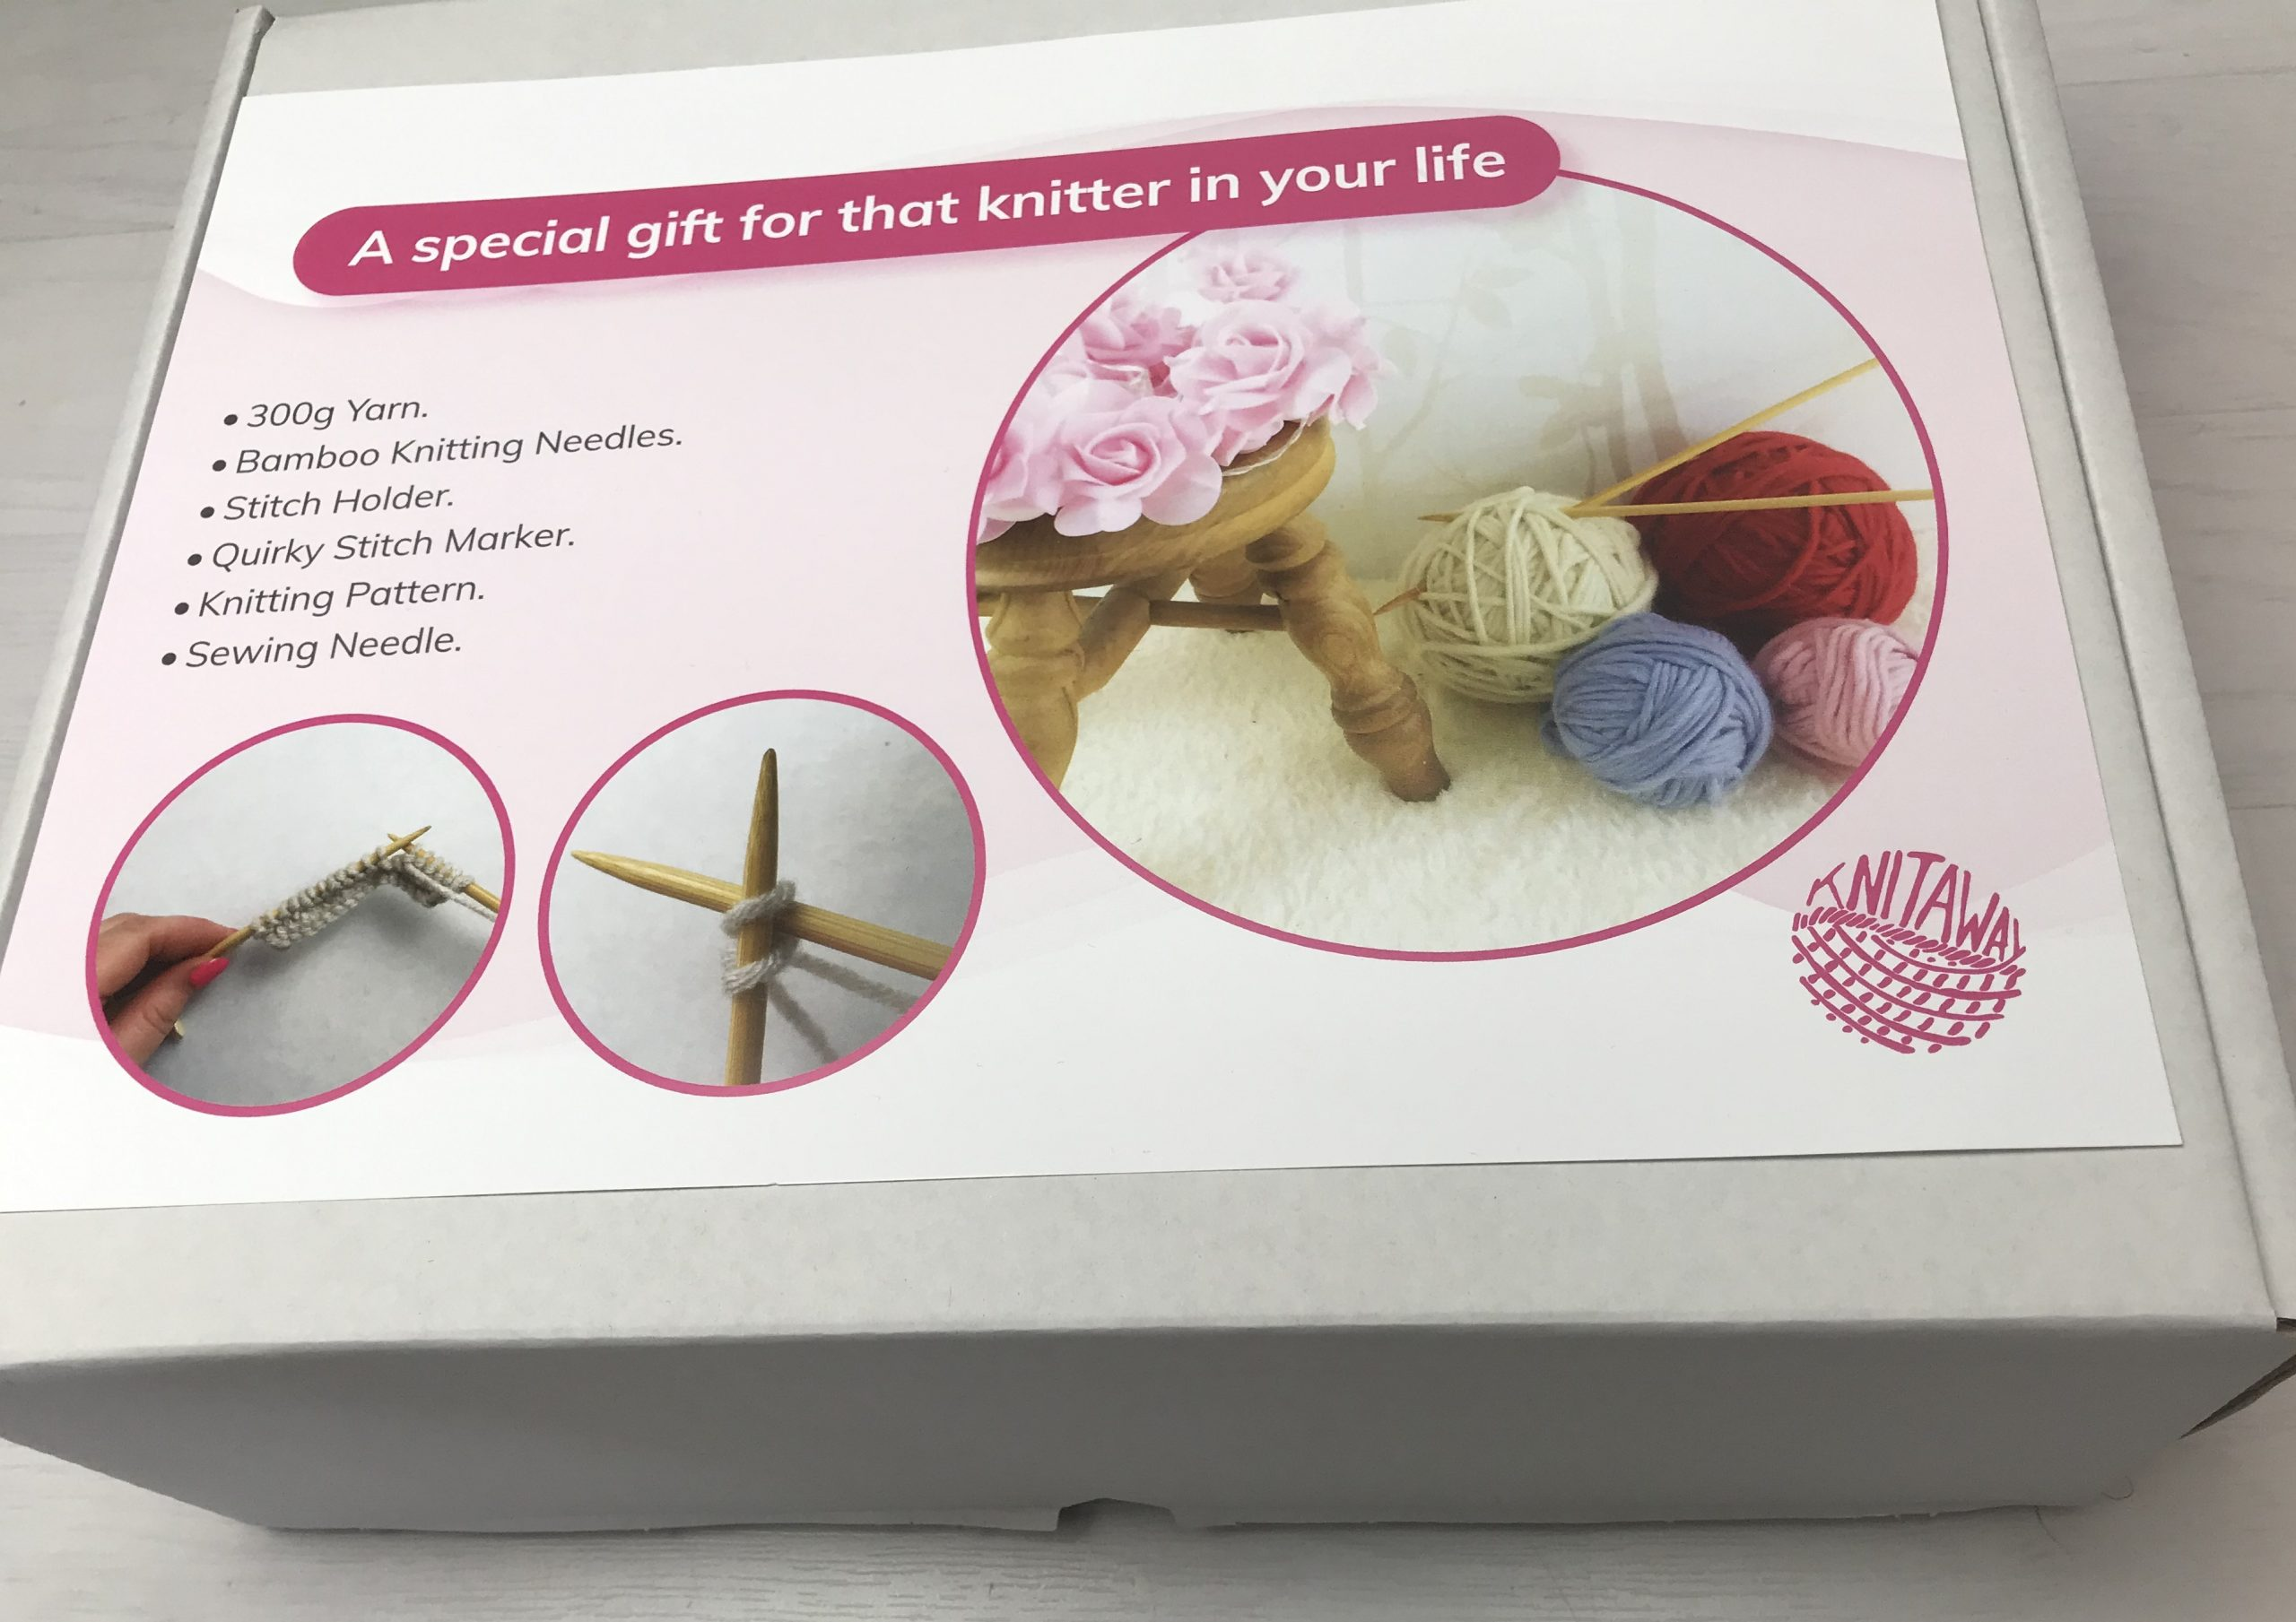 A special Knitting Kit for that knitter in your life